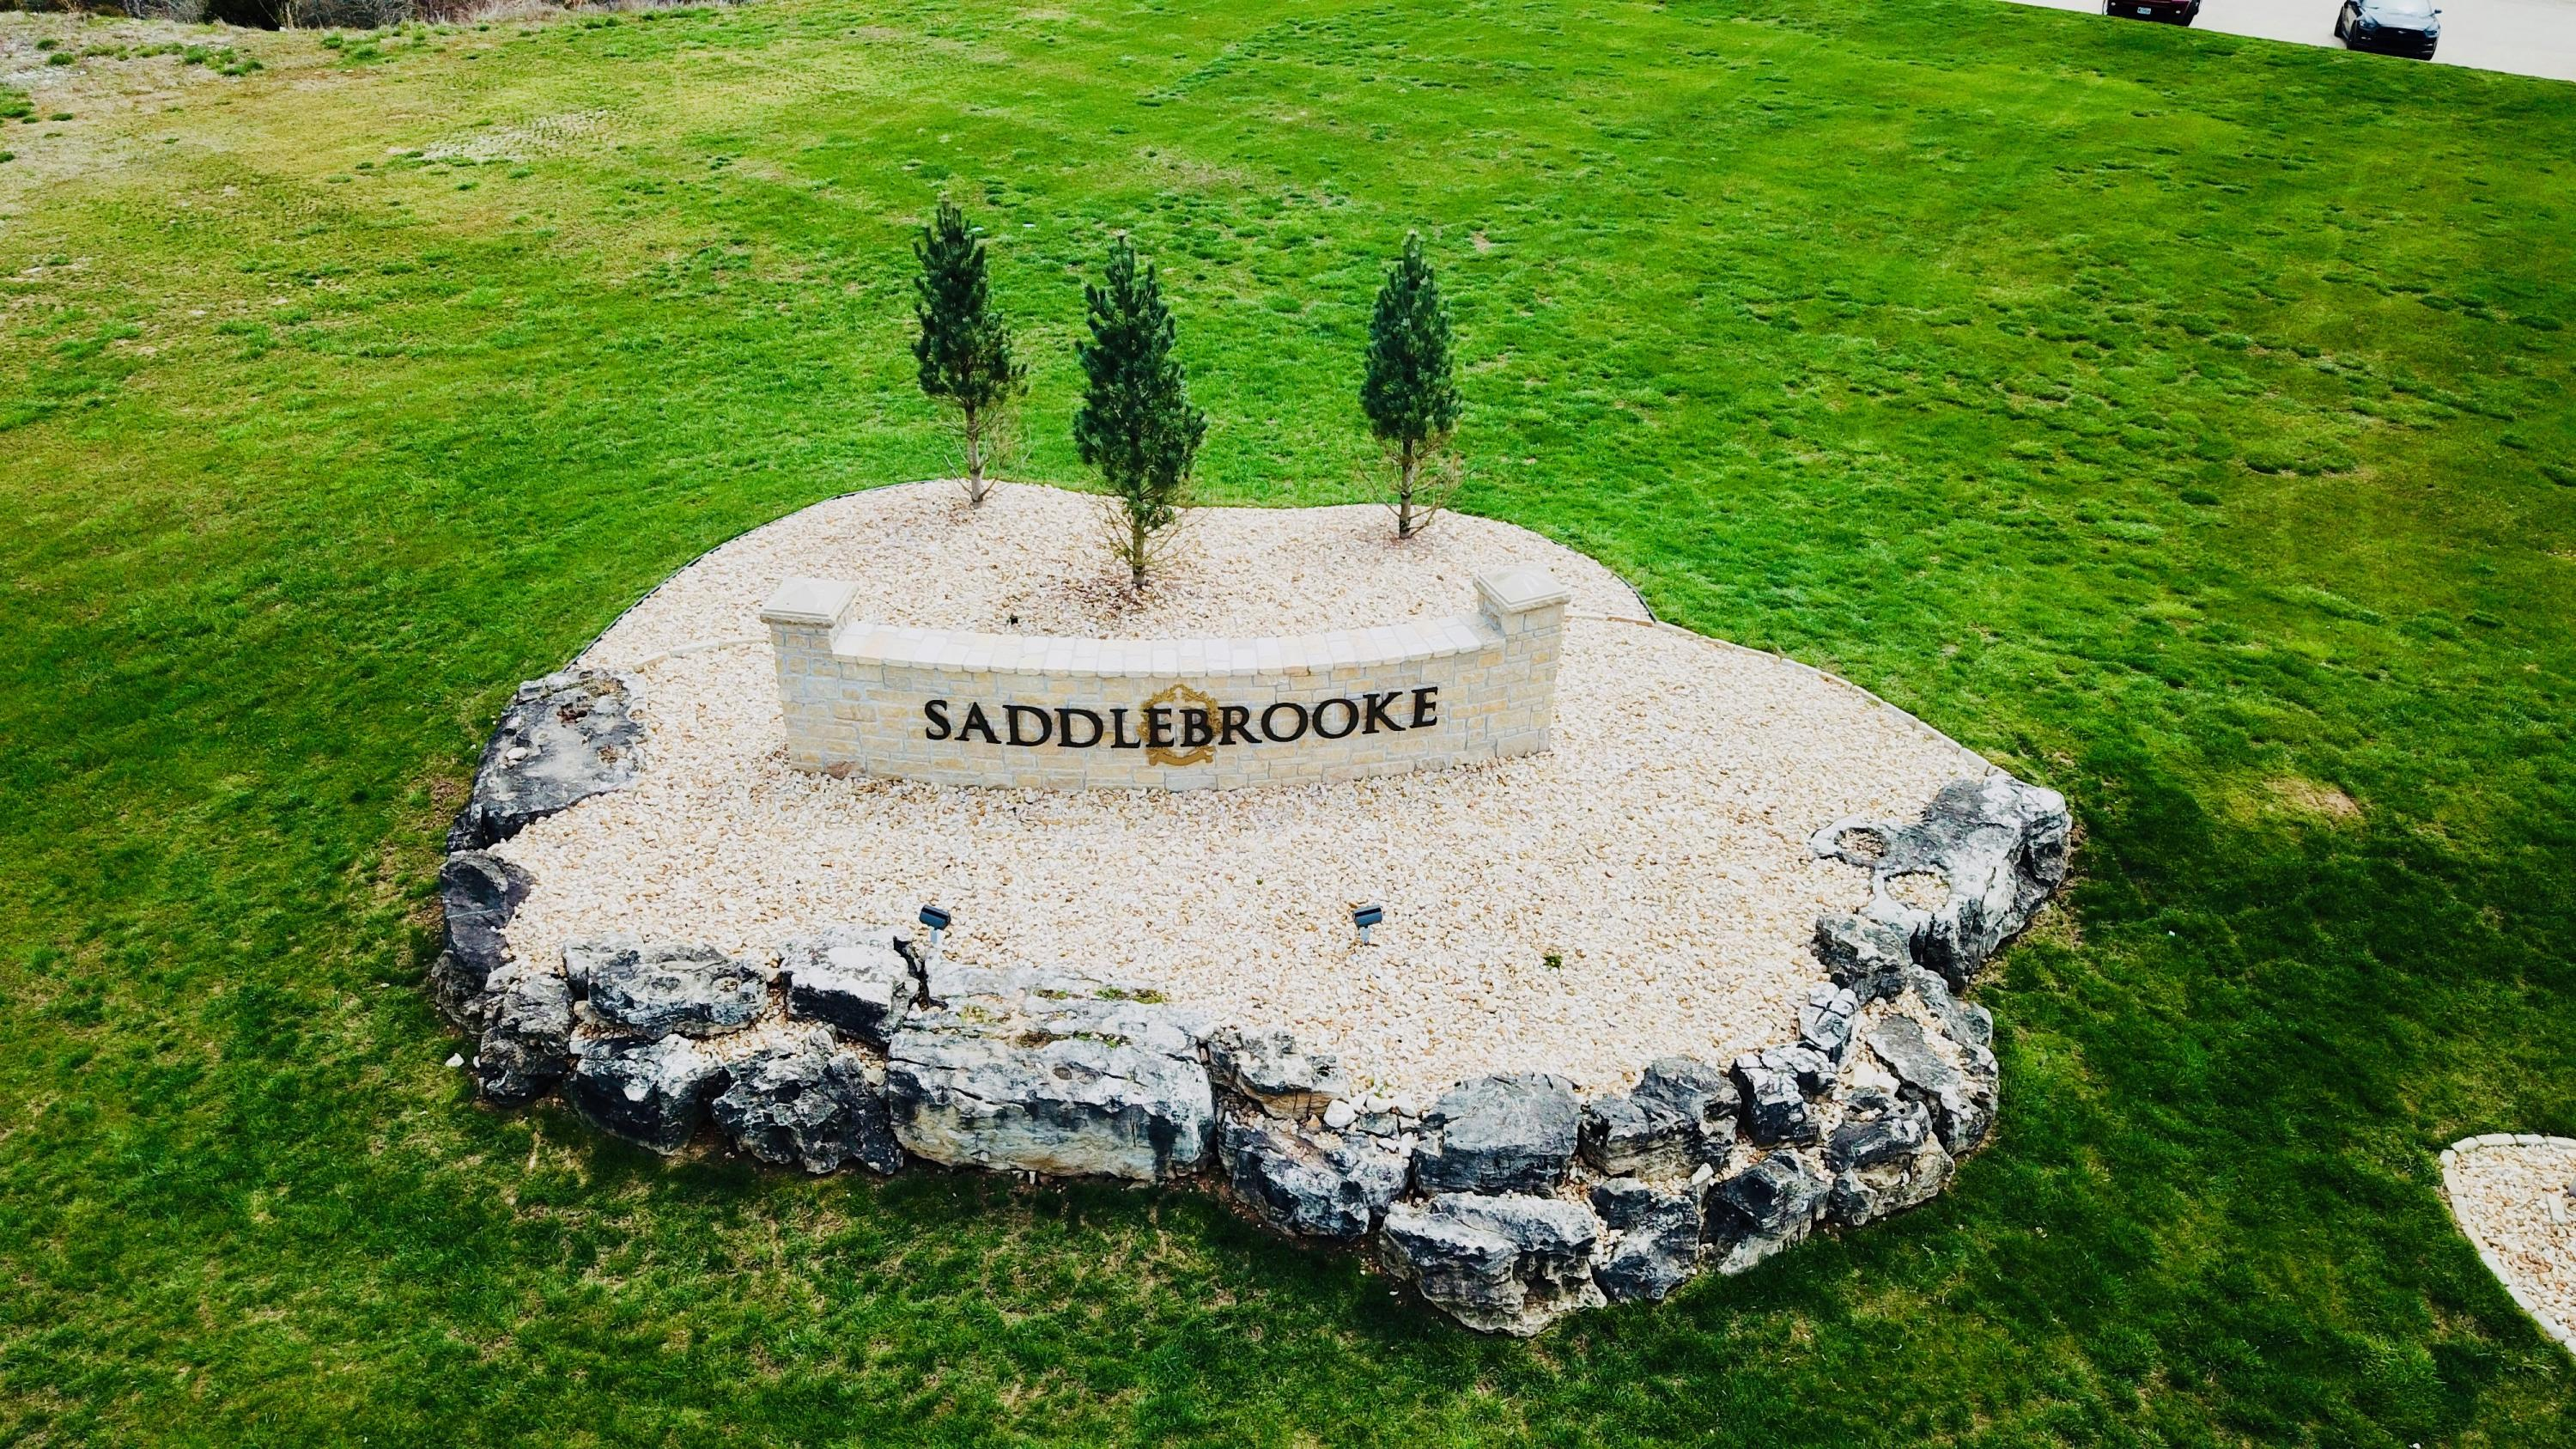 Saddlebrook Drive Saddlebrooke, MO 65630